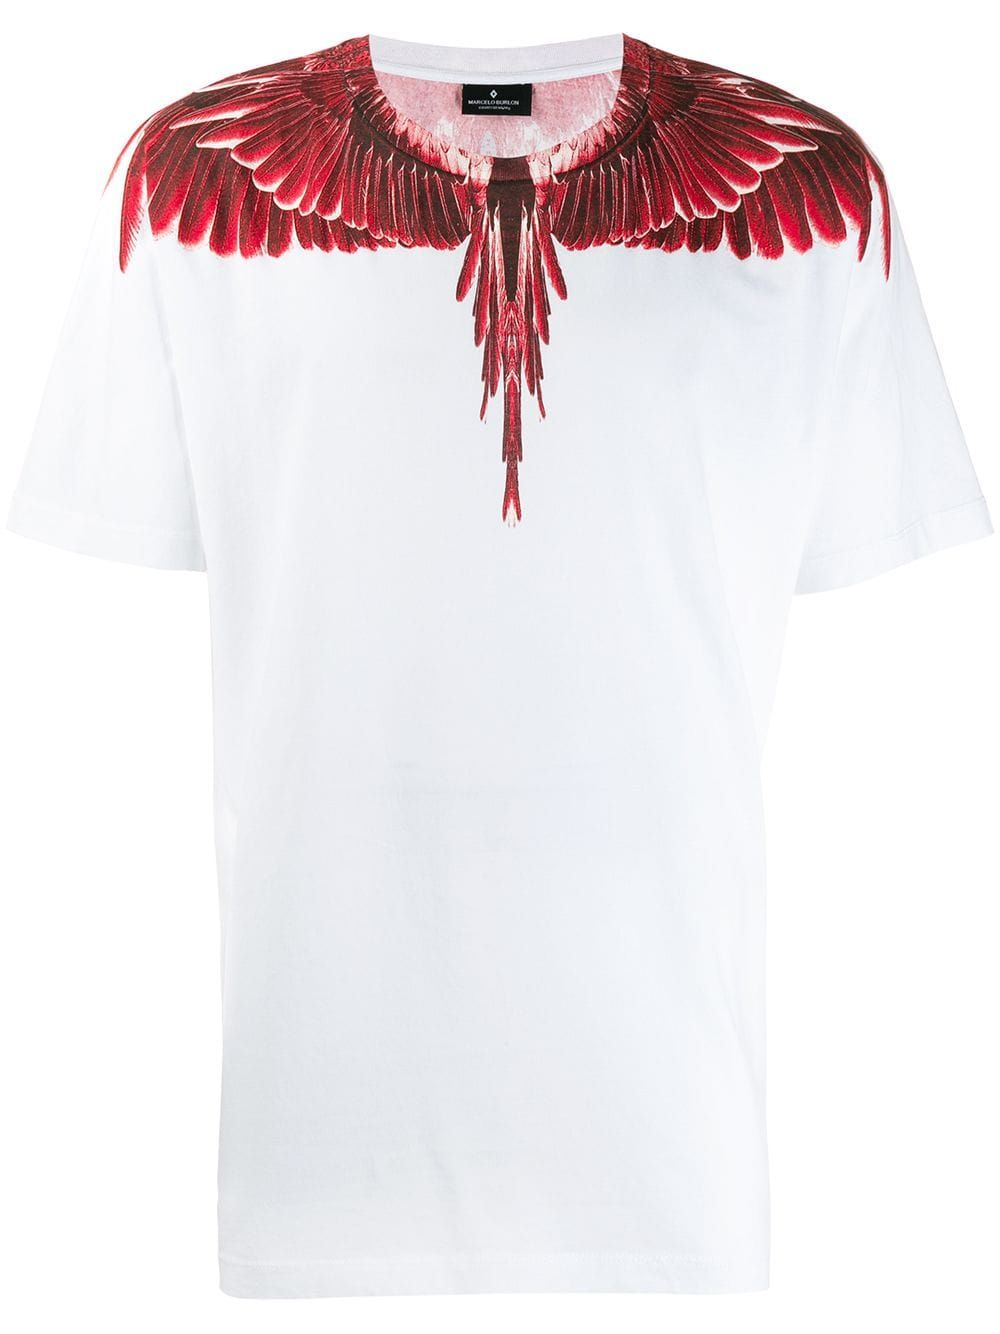 wings T shirt | Milan, Size clothing, Printed cotton